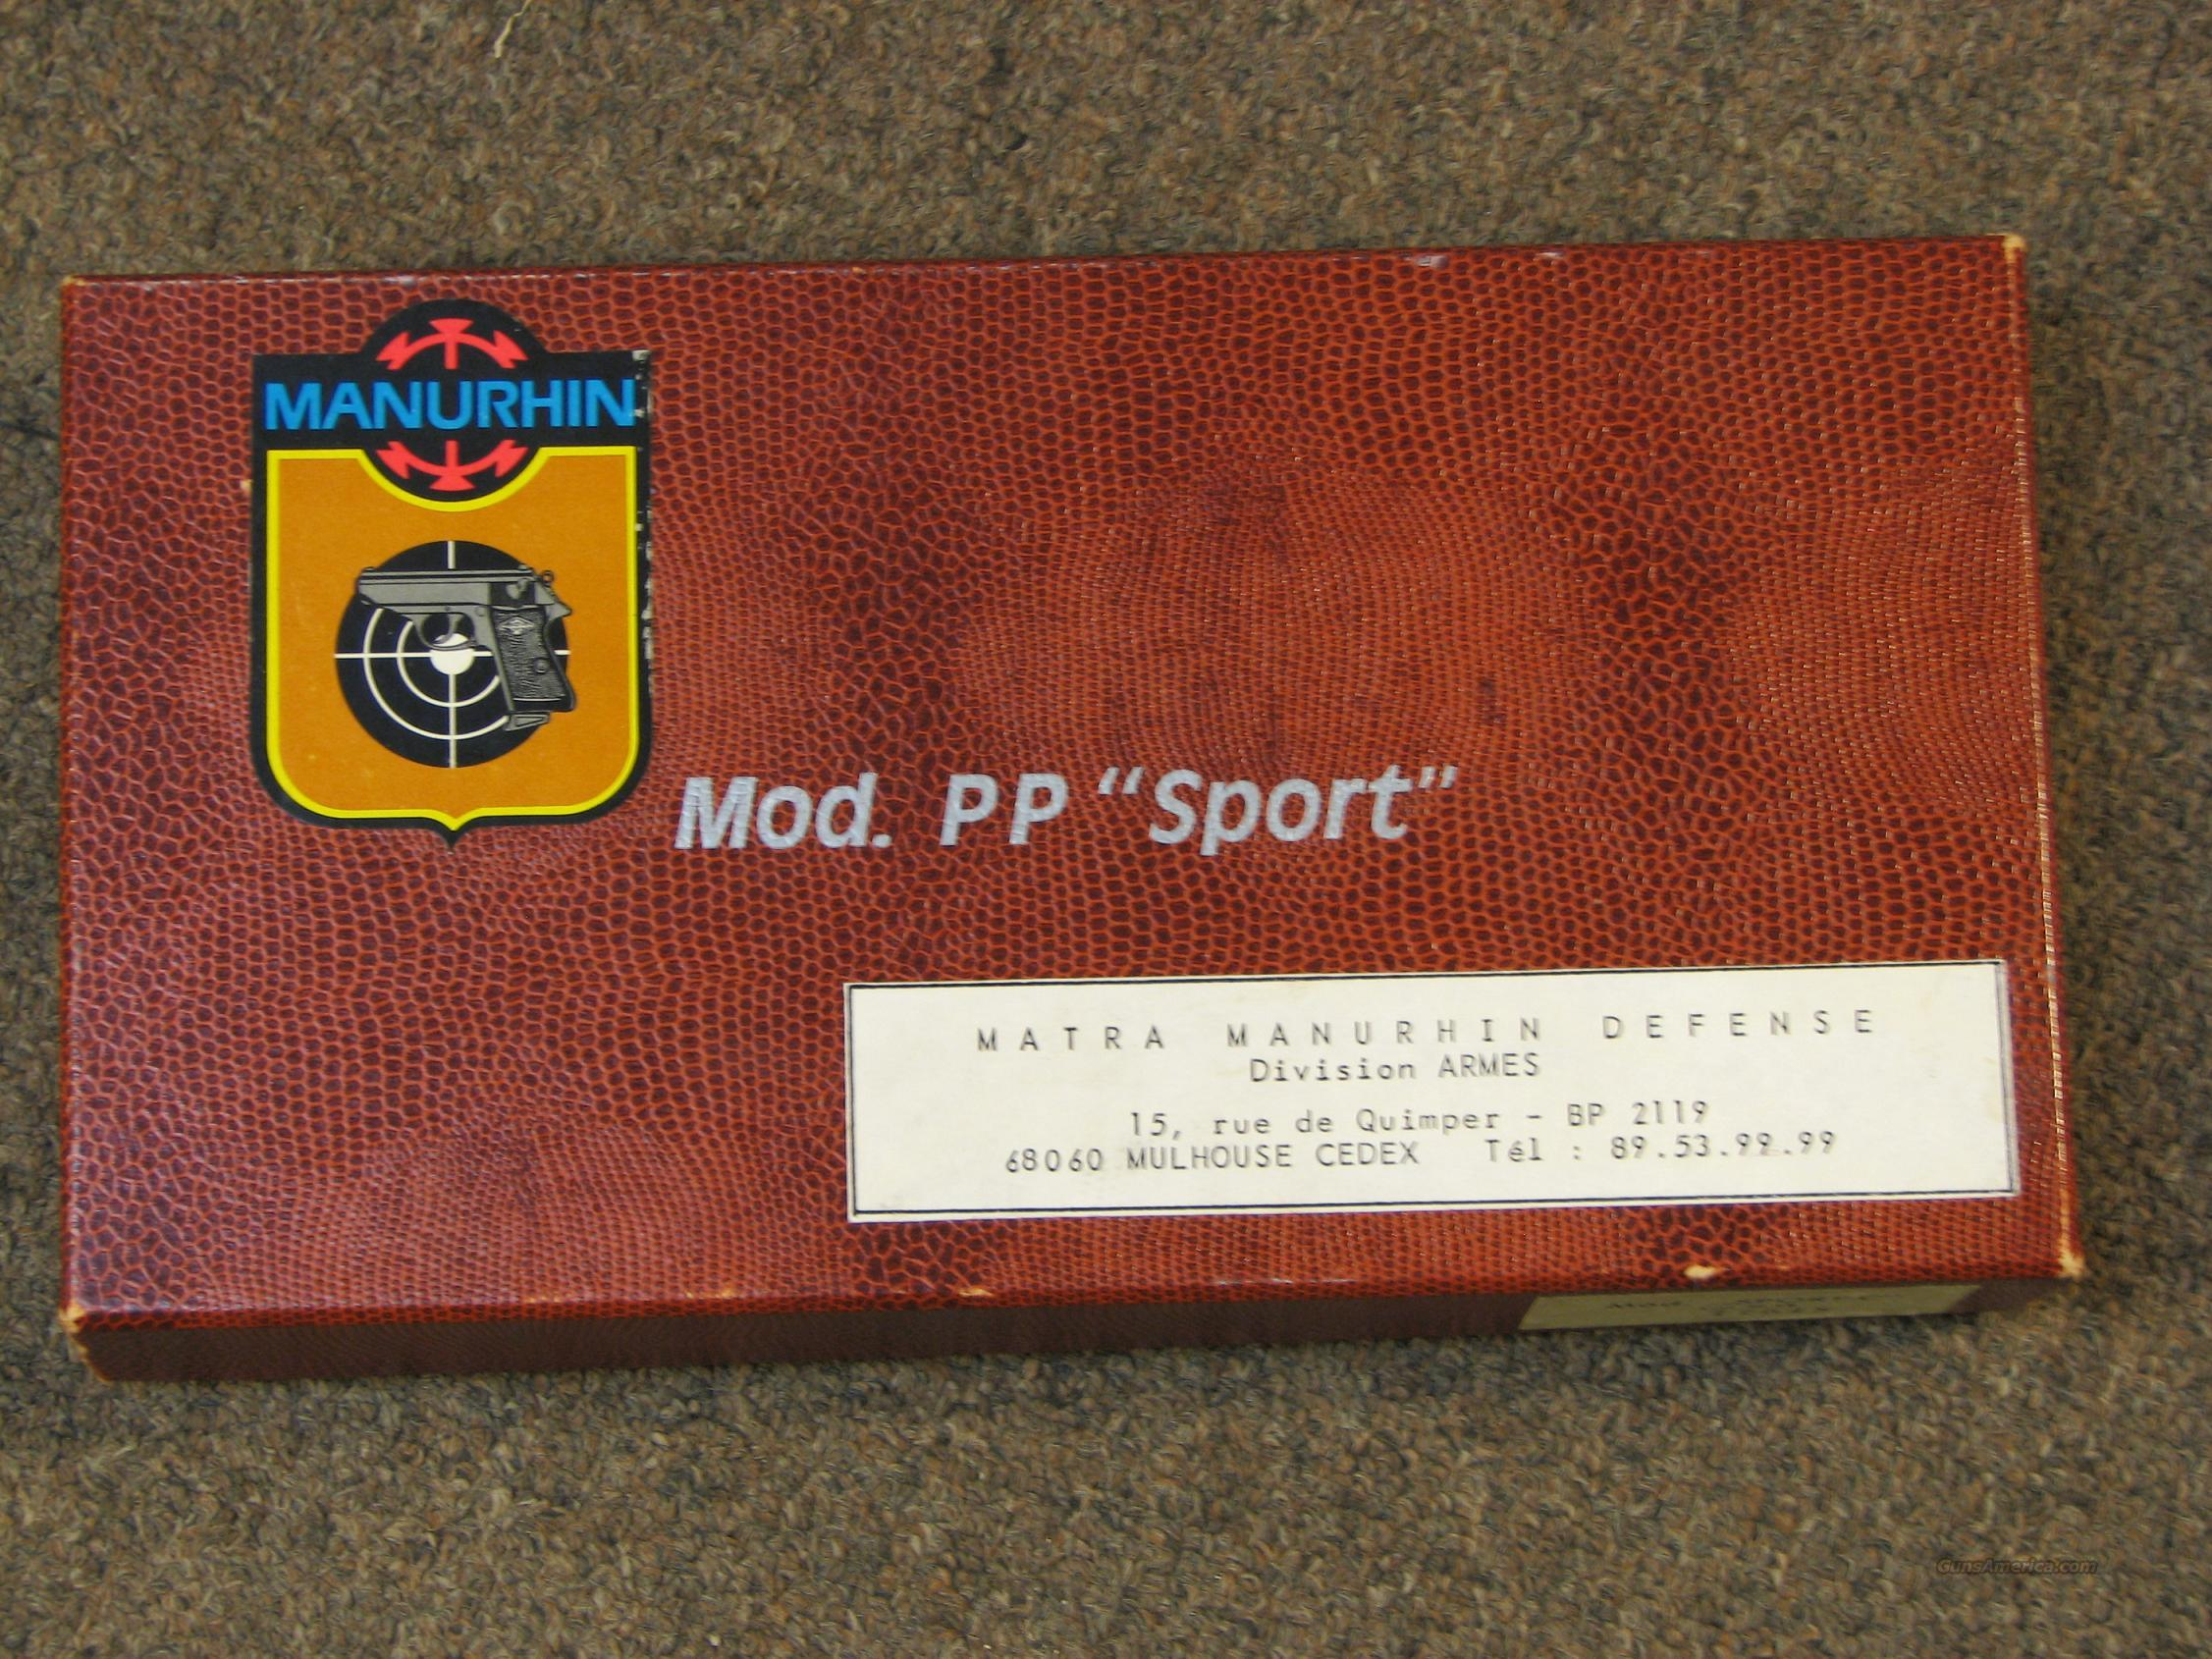 MANURHIN WALTHER PP SPORT 22 LR - LIKE NEW IN BOX!  Guns > Pistols > Walther Pistols > Post WWII > PP Series